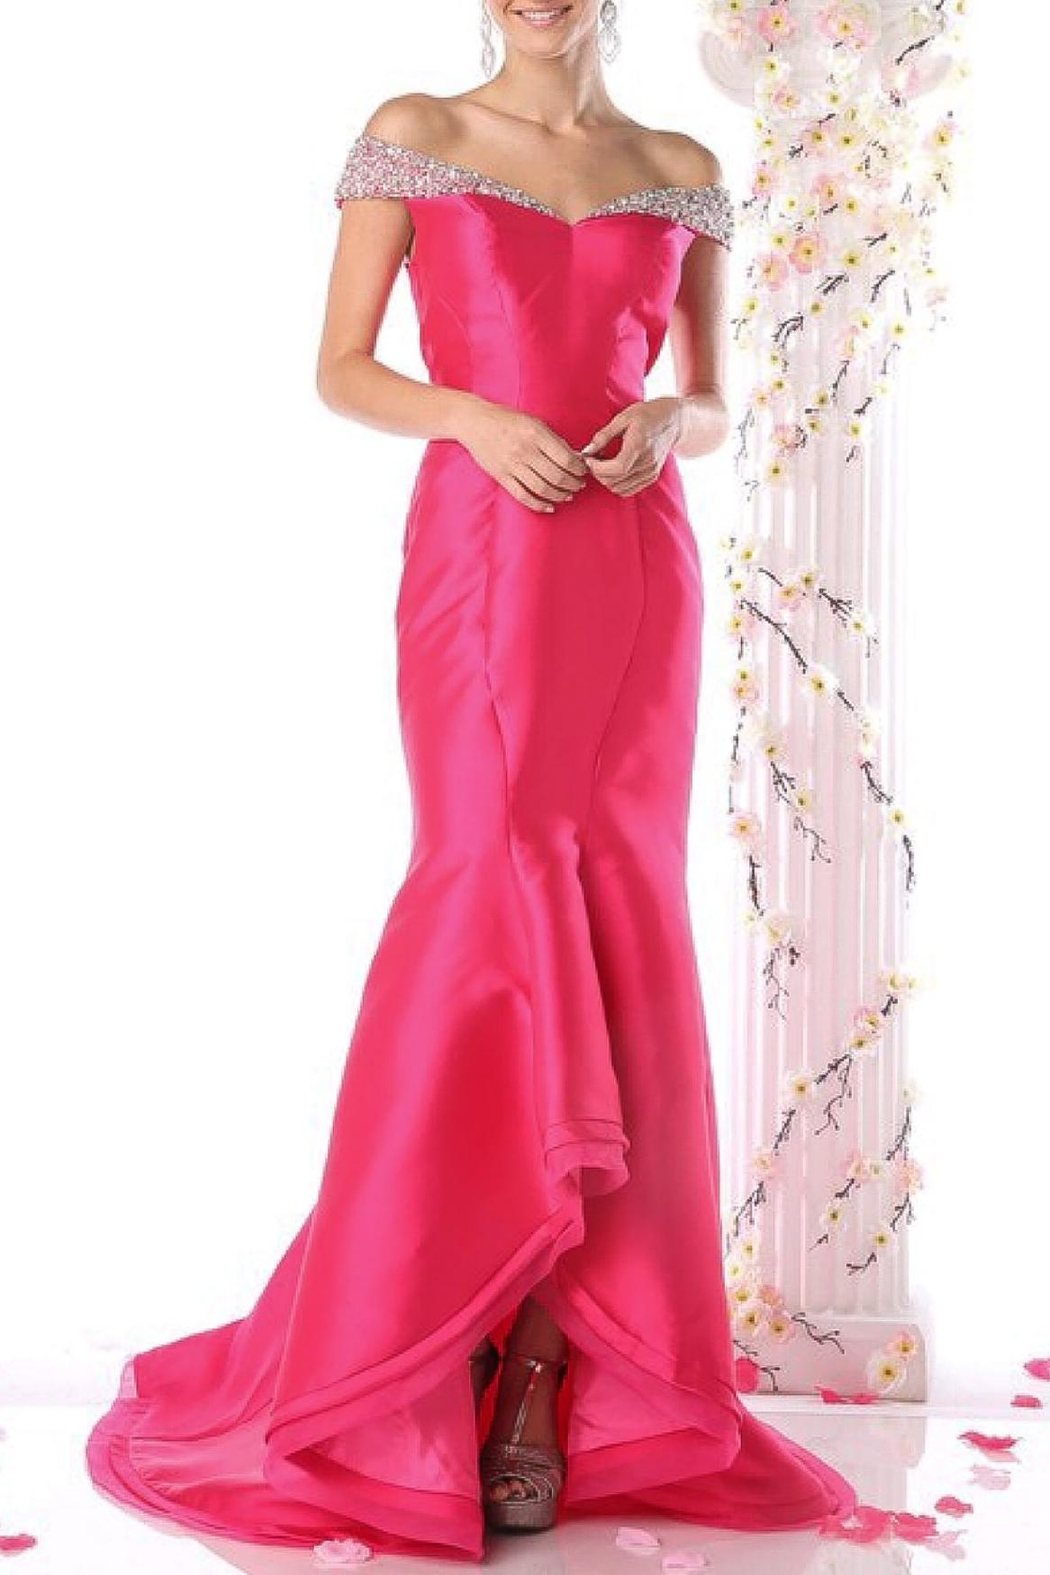 Dress formal dress Off-Shoulder Layered Mermaid - Main Image